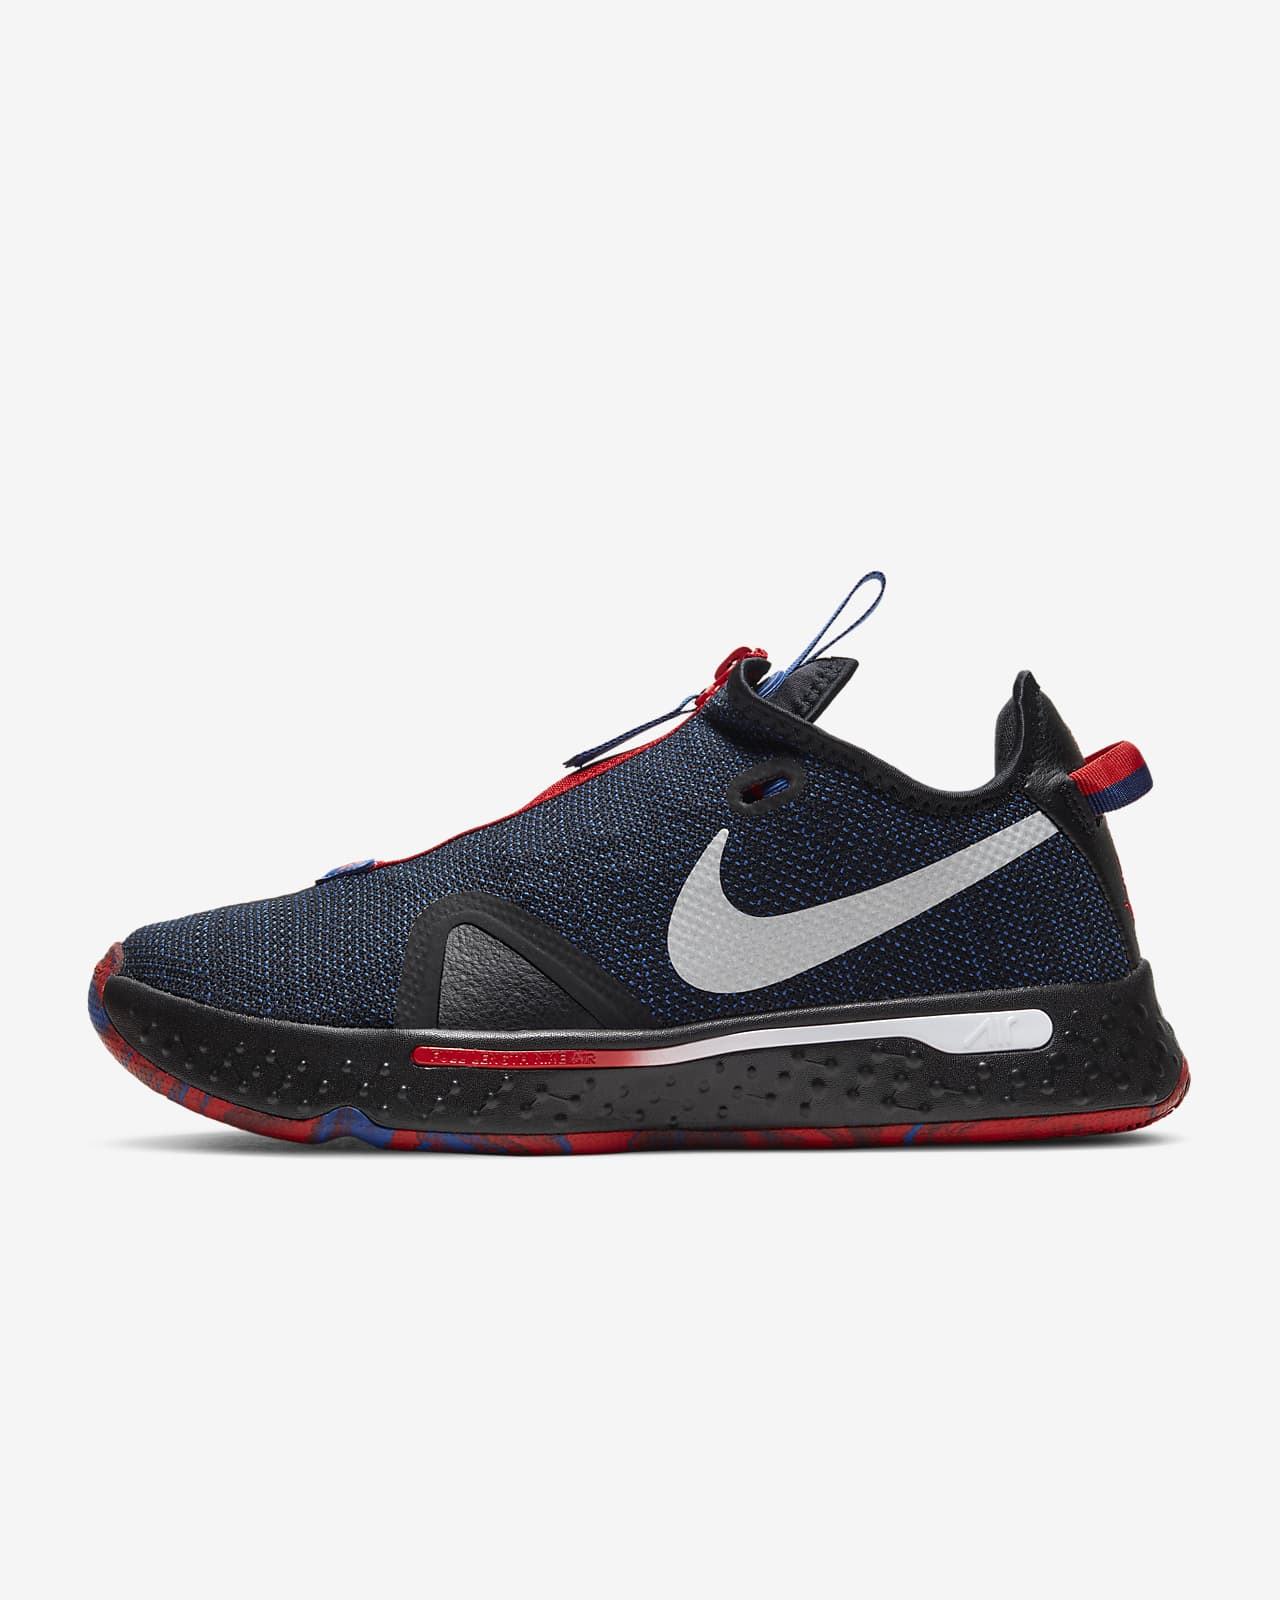 PG 4 Basketball Shoe